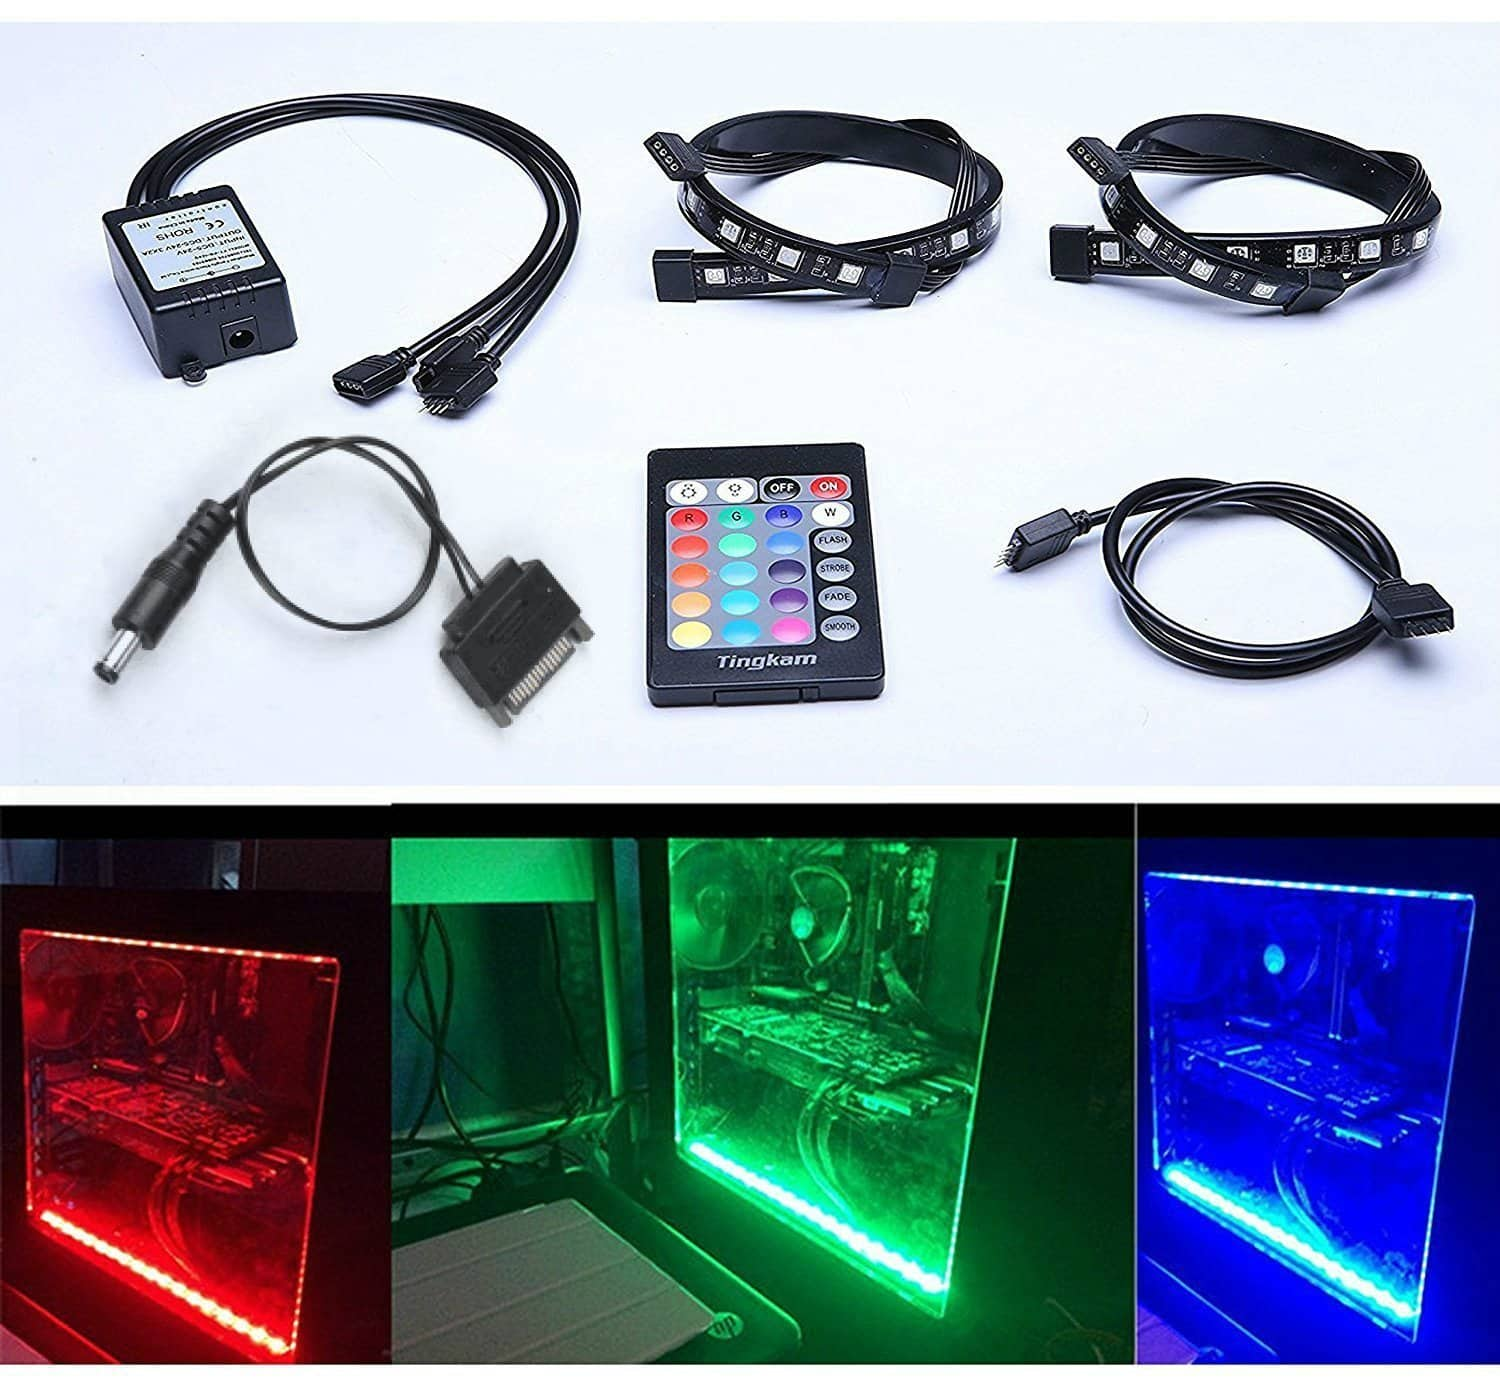 Full Kit RGB 5050 SMD 2pcs 18leds 30cm LED Strip Light Attached to Your PC Case for $14.99 @ Amazon